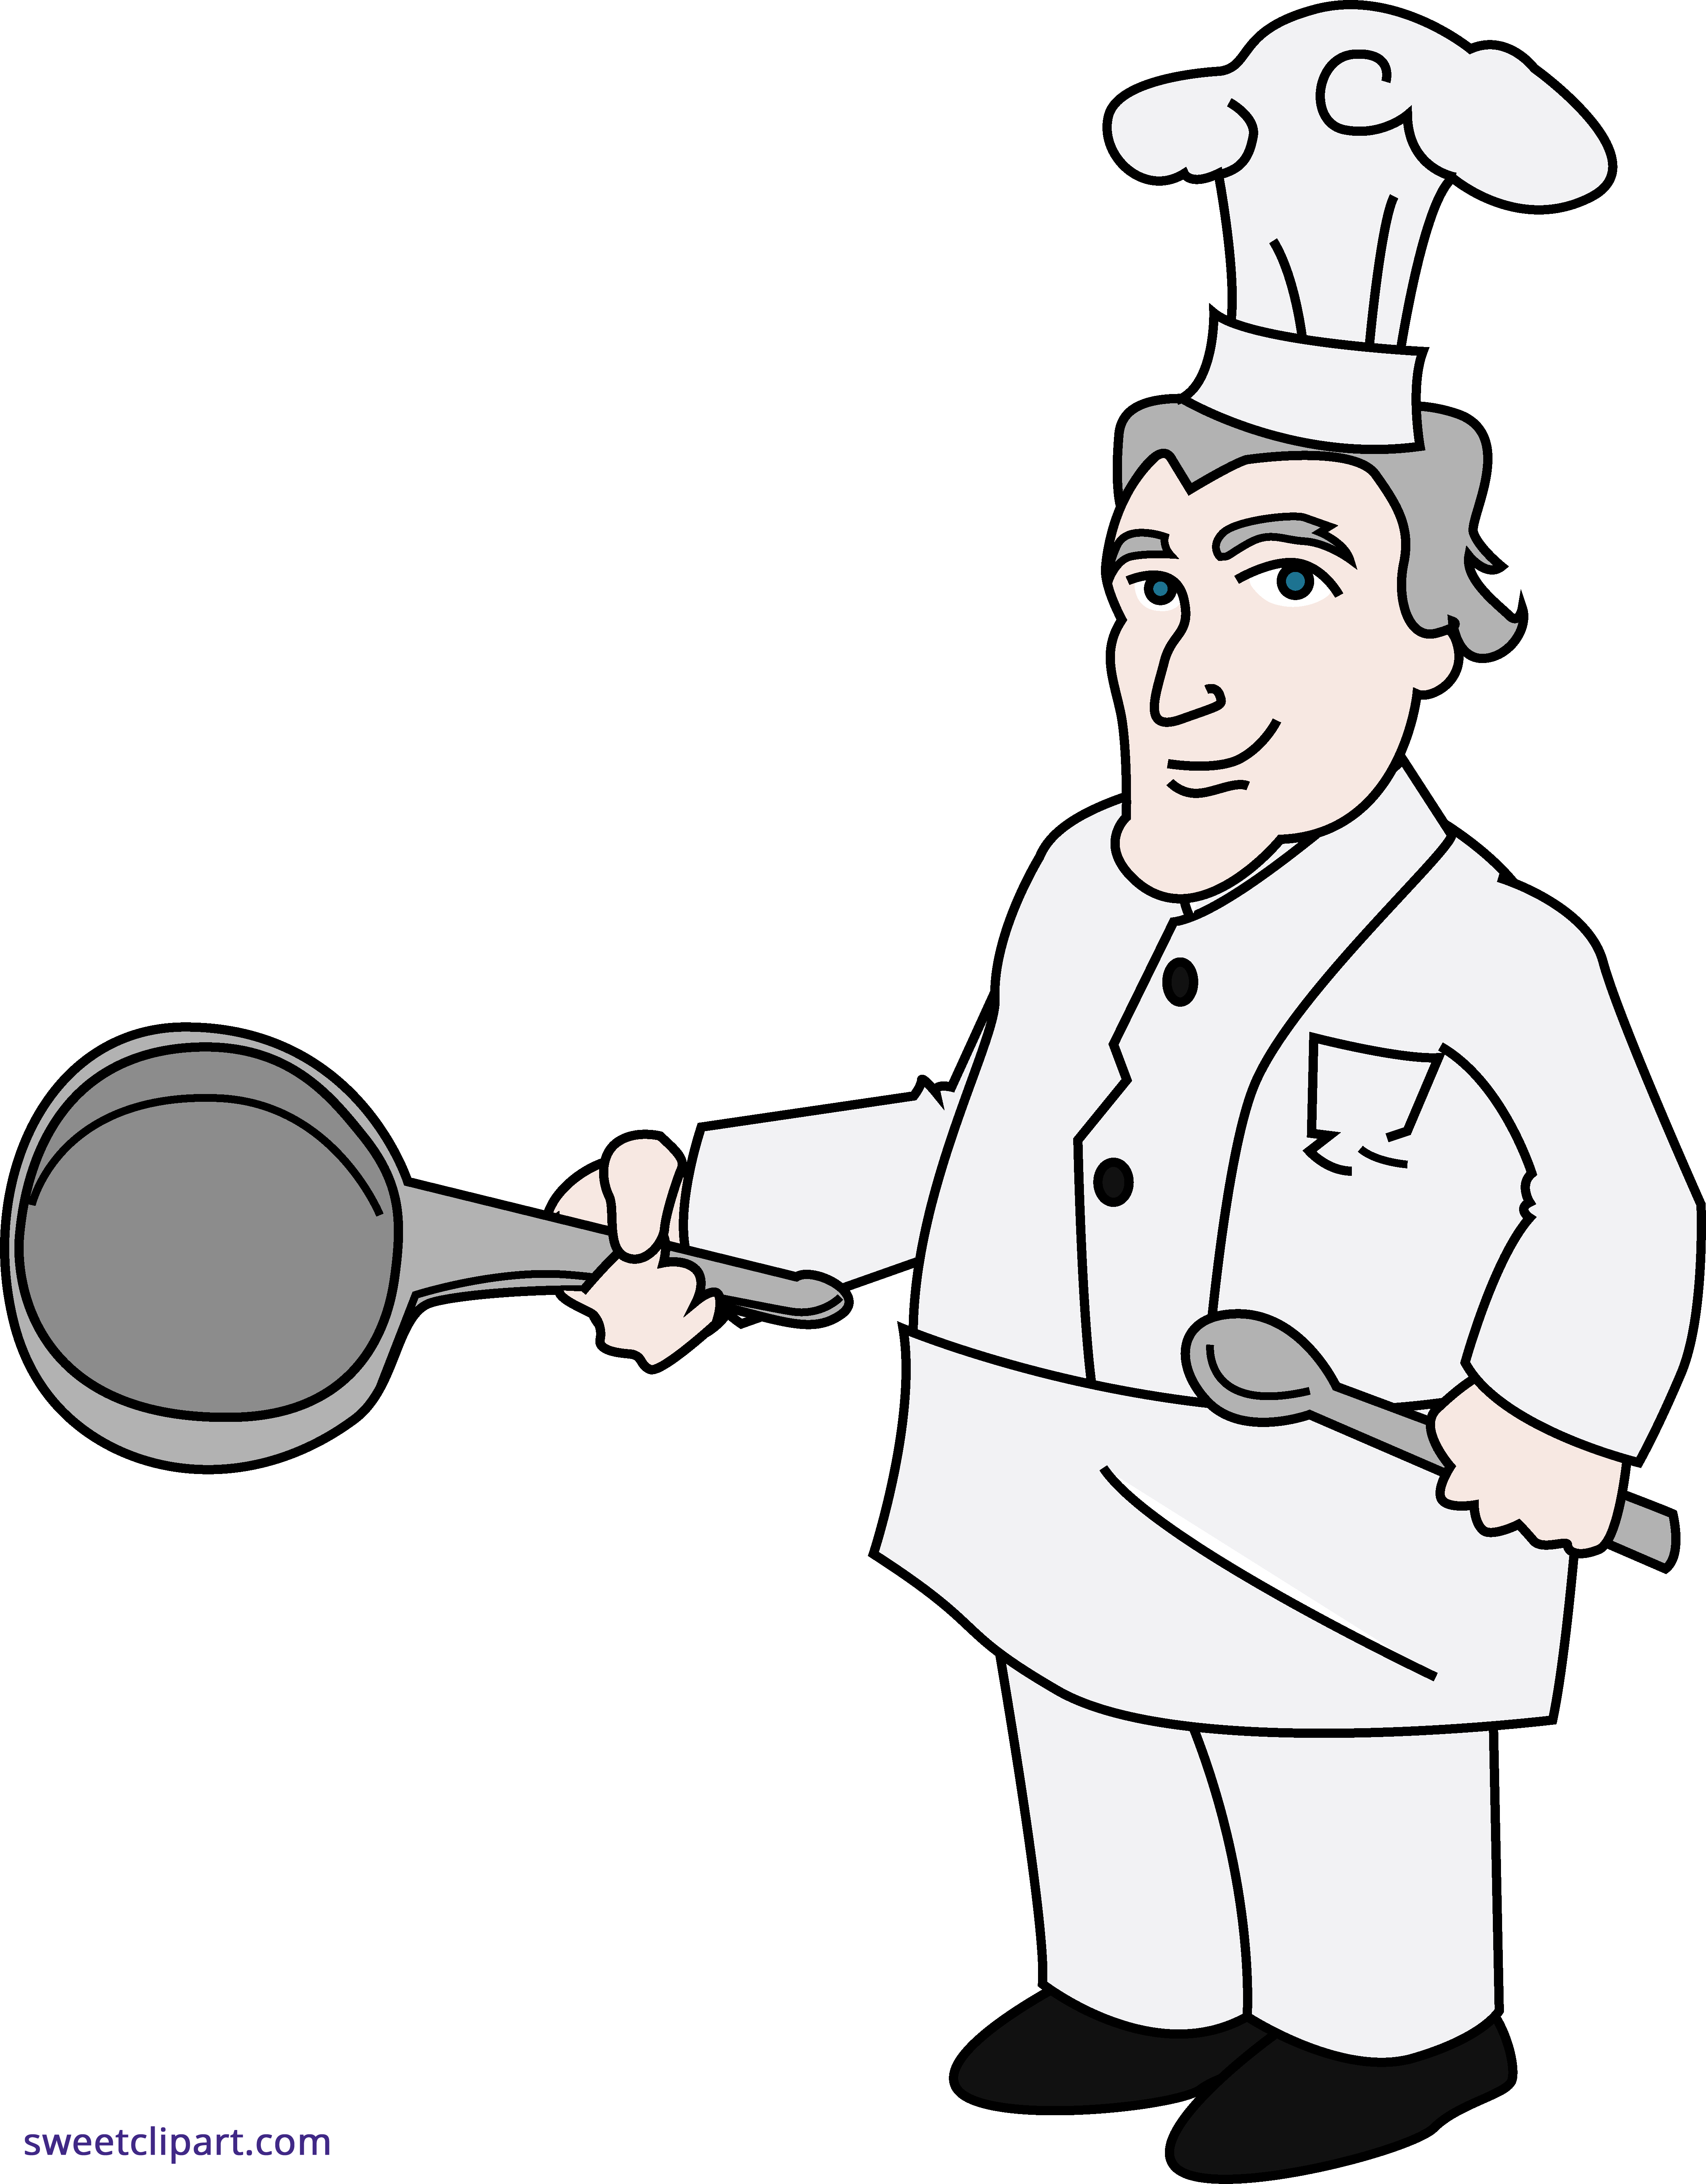 graphic black and white Chef clipart cheaf. Clip art sweet.